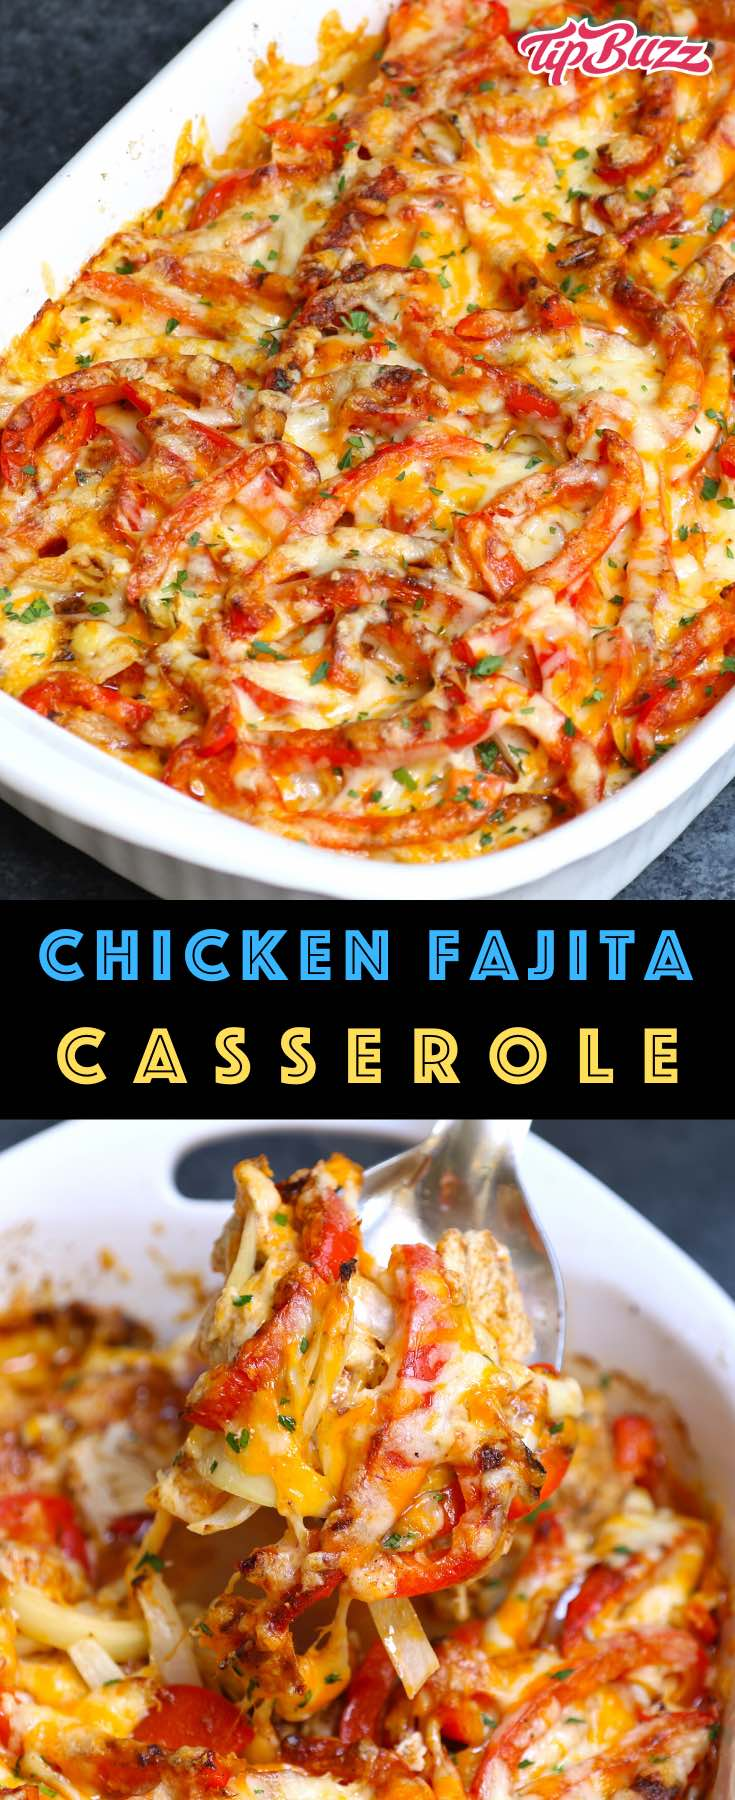 Chicken Fajita Casserole made with chicken, onions and bell peppers, fajita seasonings and topped with melted cheese. An easy Tex Mex dinner idea that's ready in 30 minutes with mouthwatering Meican fajita flavors! #fajitacasserole #chickenfajitacasserole